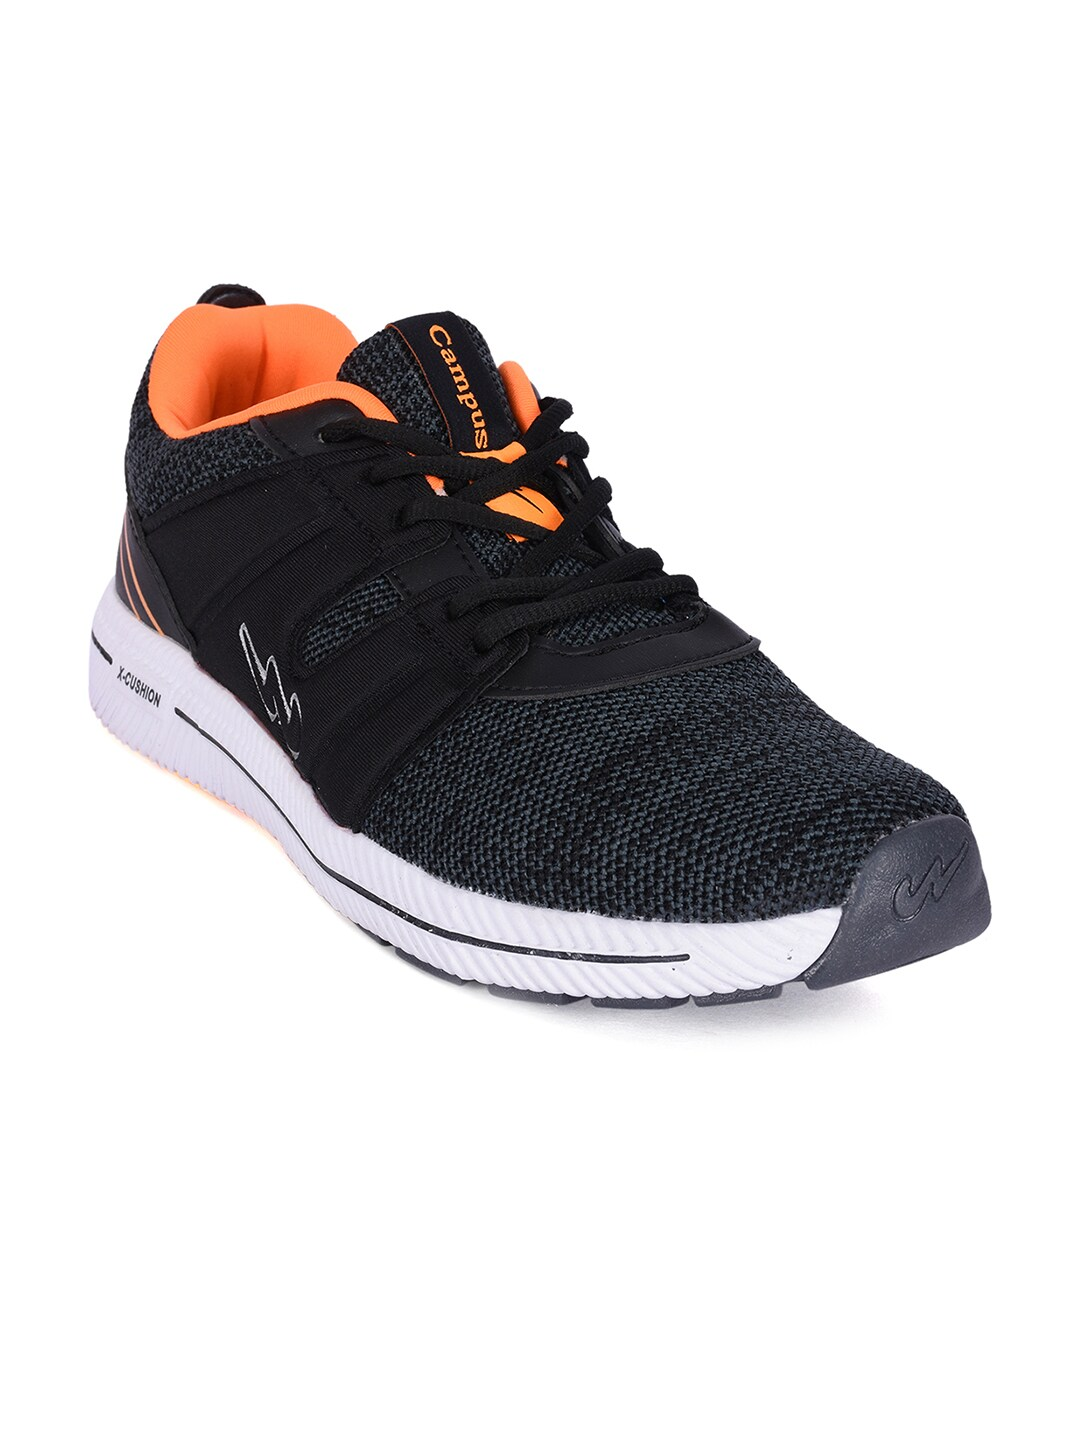 771b3b9b1b20 Campus Shoes - Buy Campus Shoes Online in India